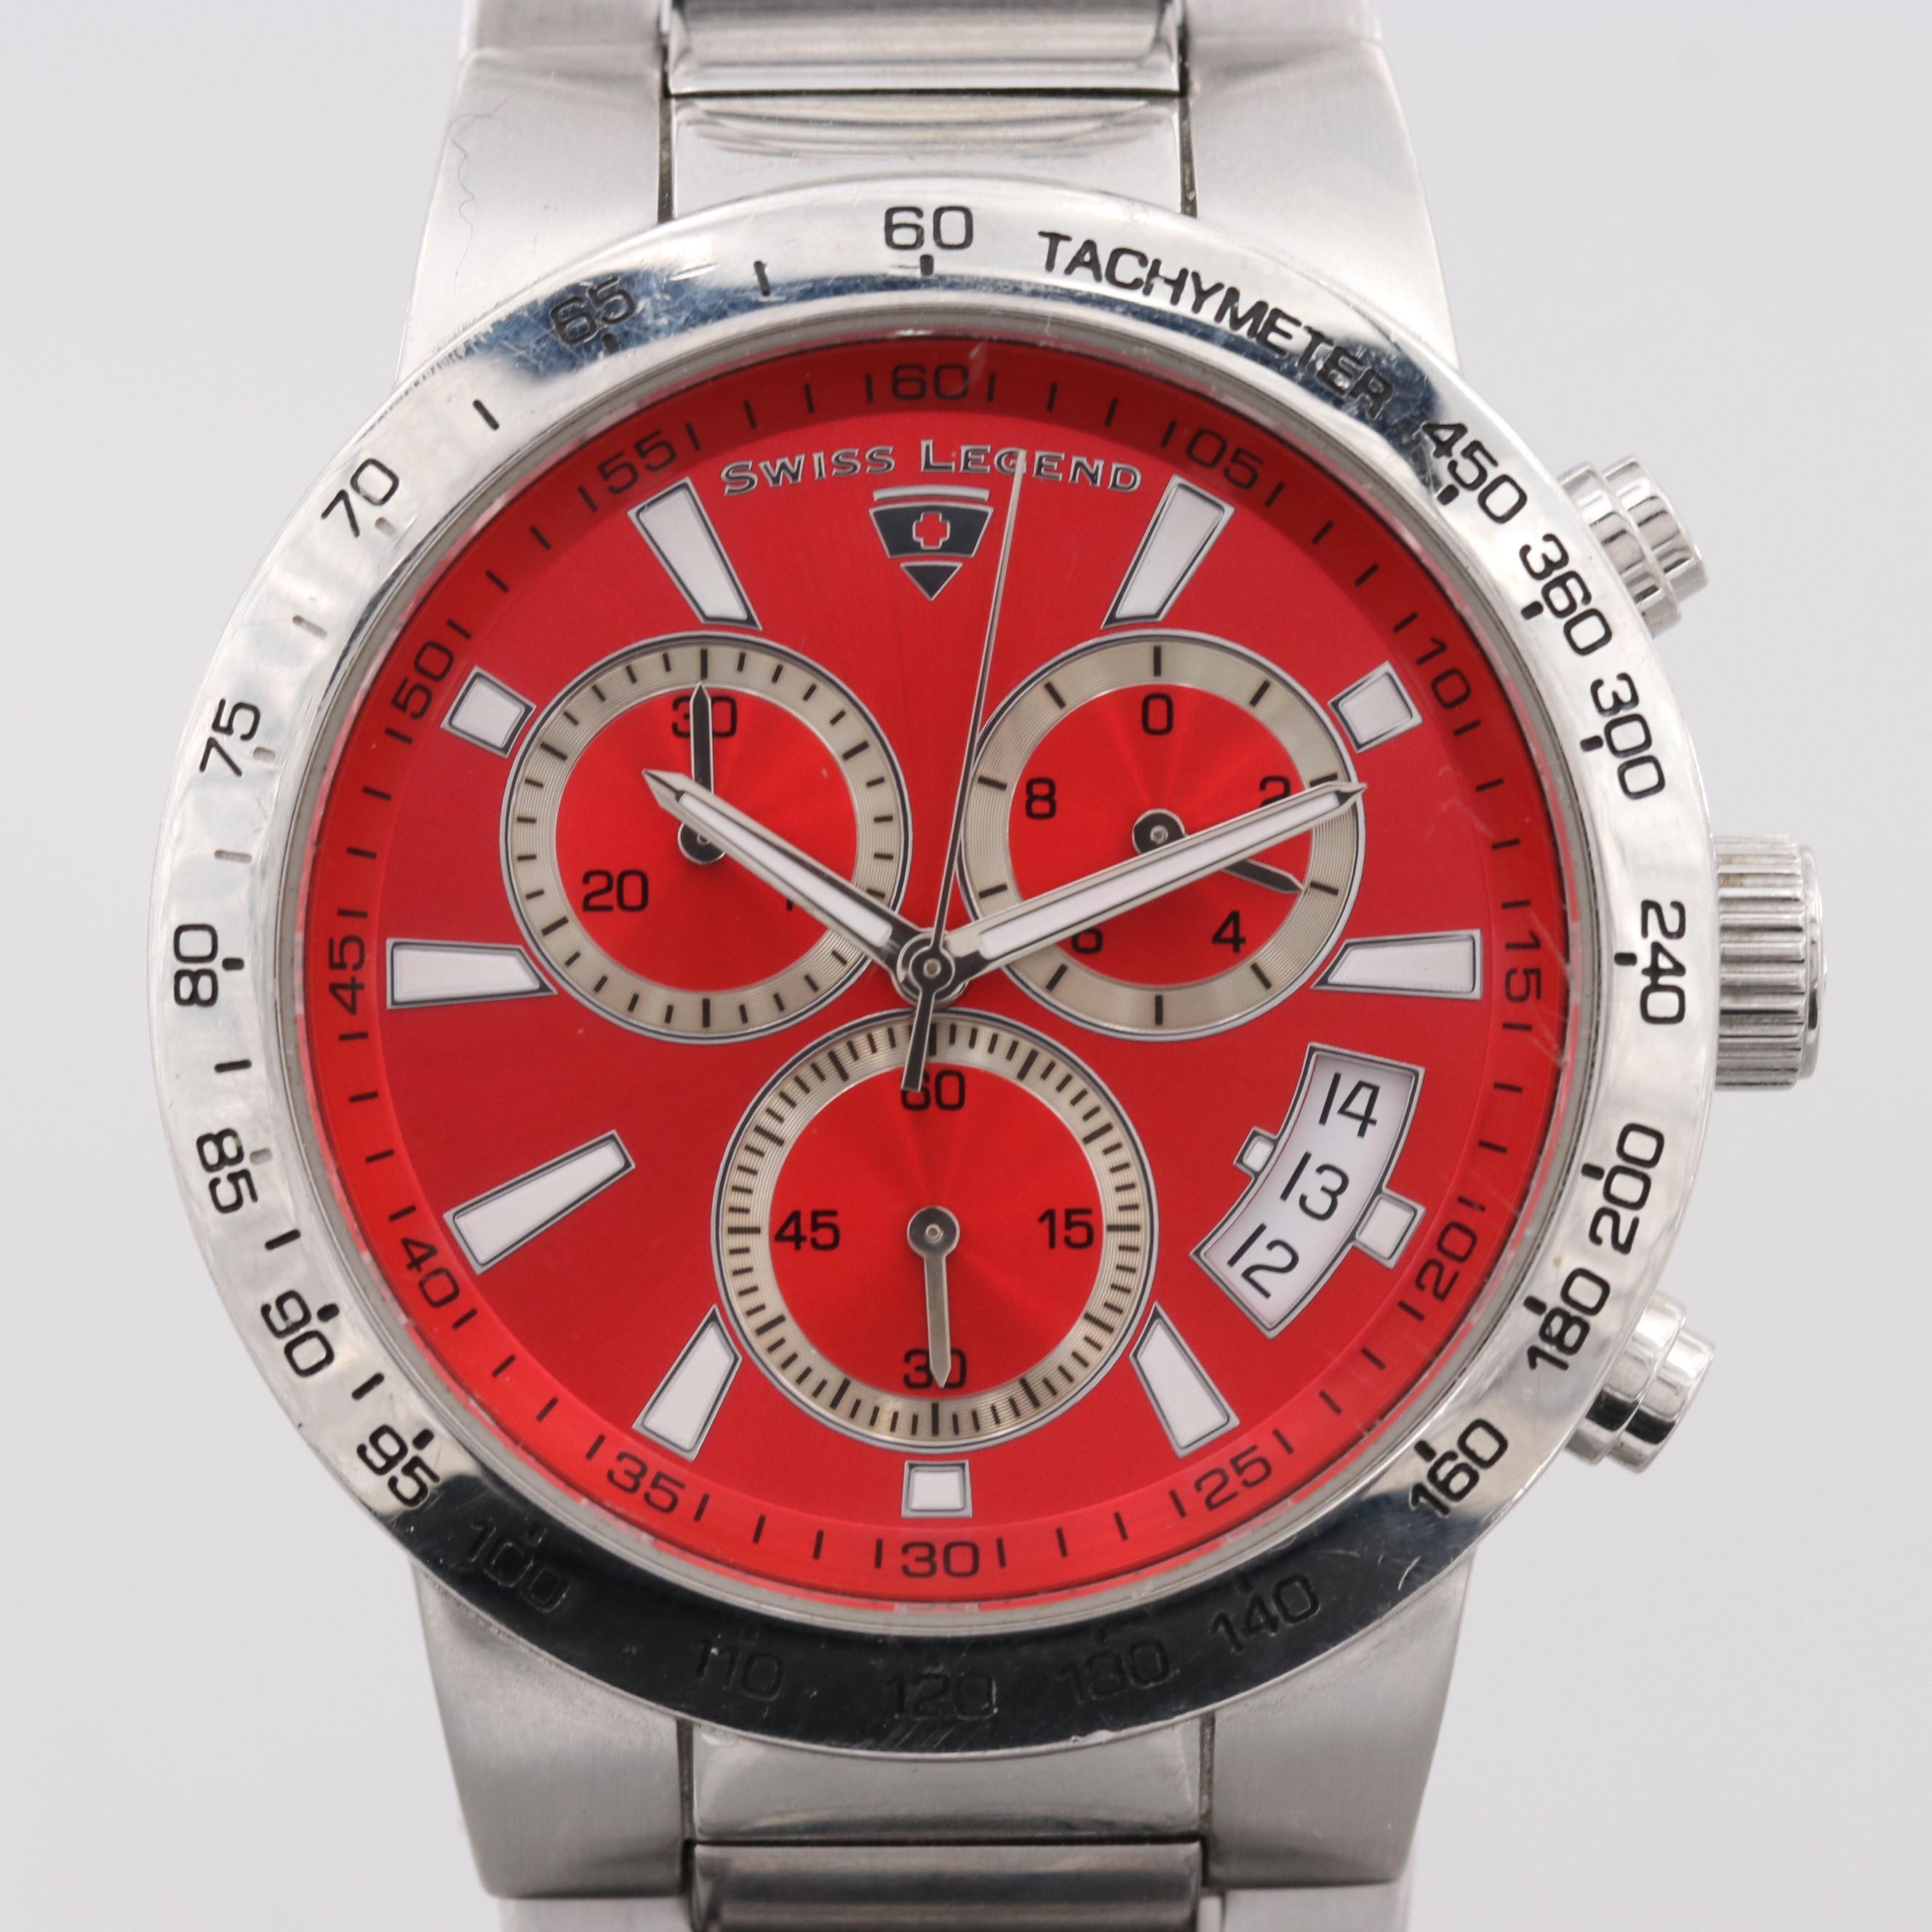 Swiss Legend Endurance Stainless Steel Chronograph Wristwatch With Date Window